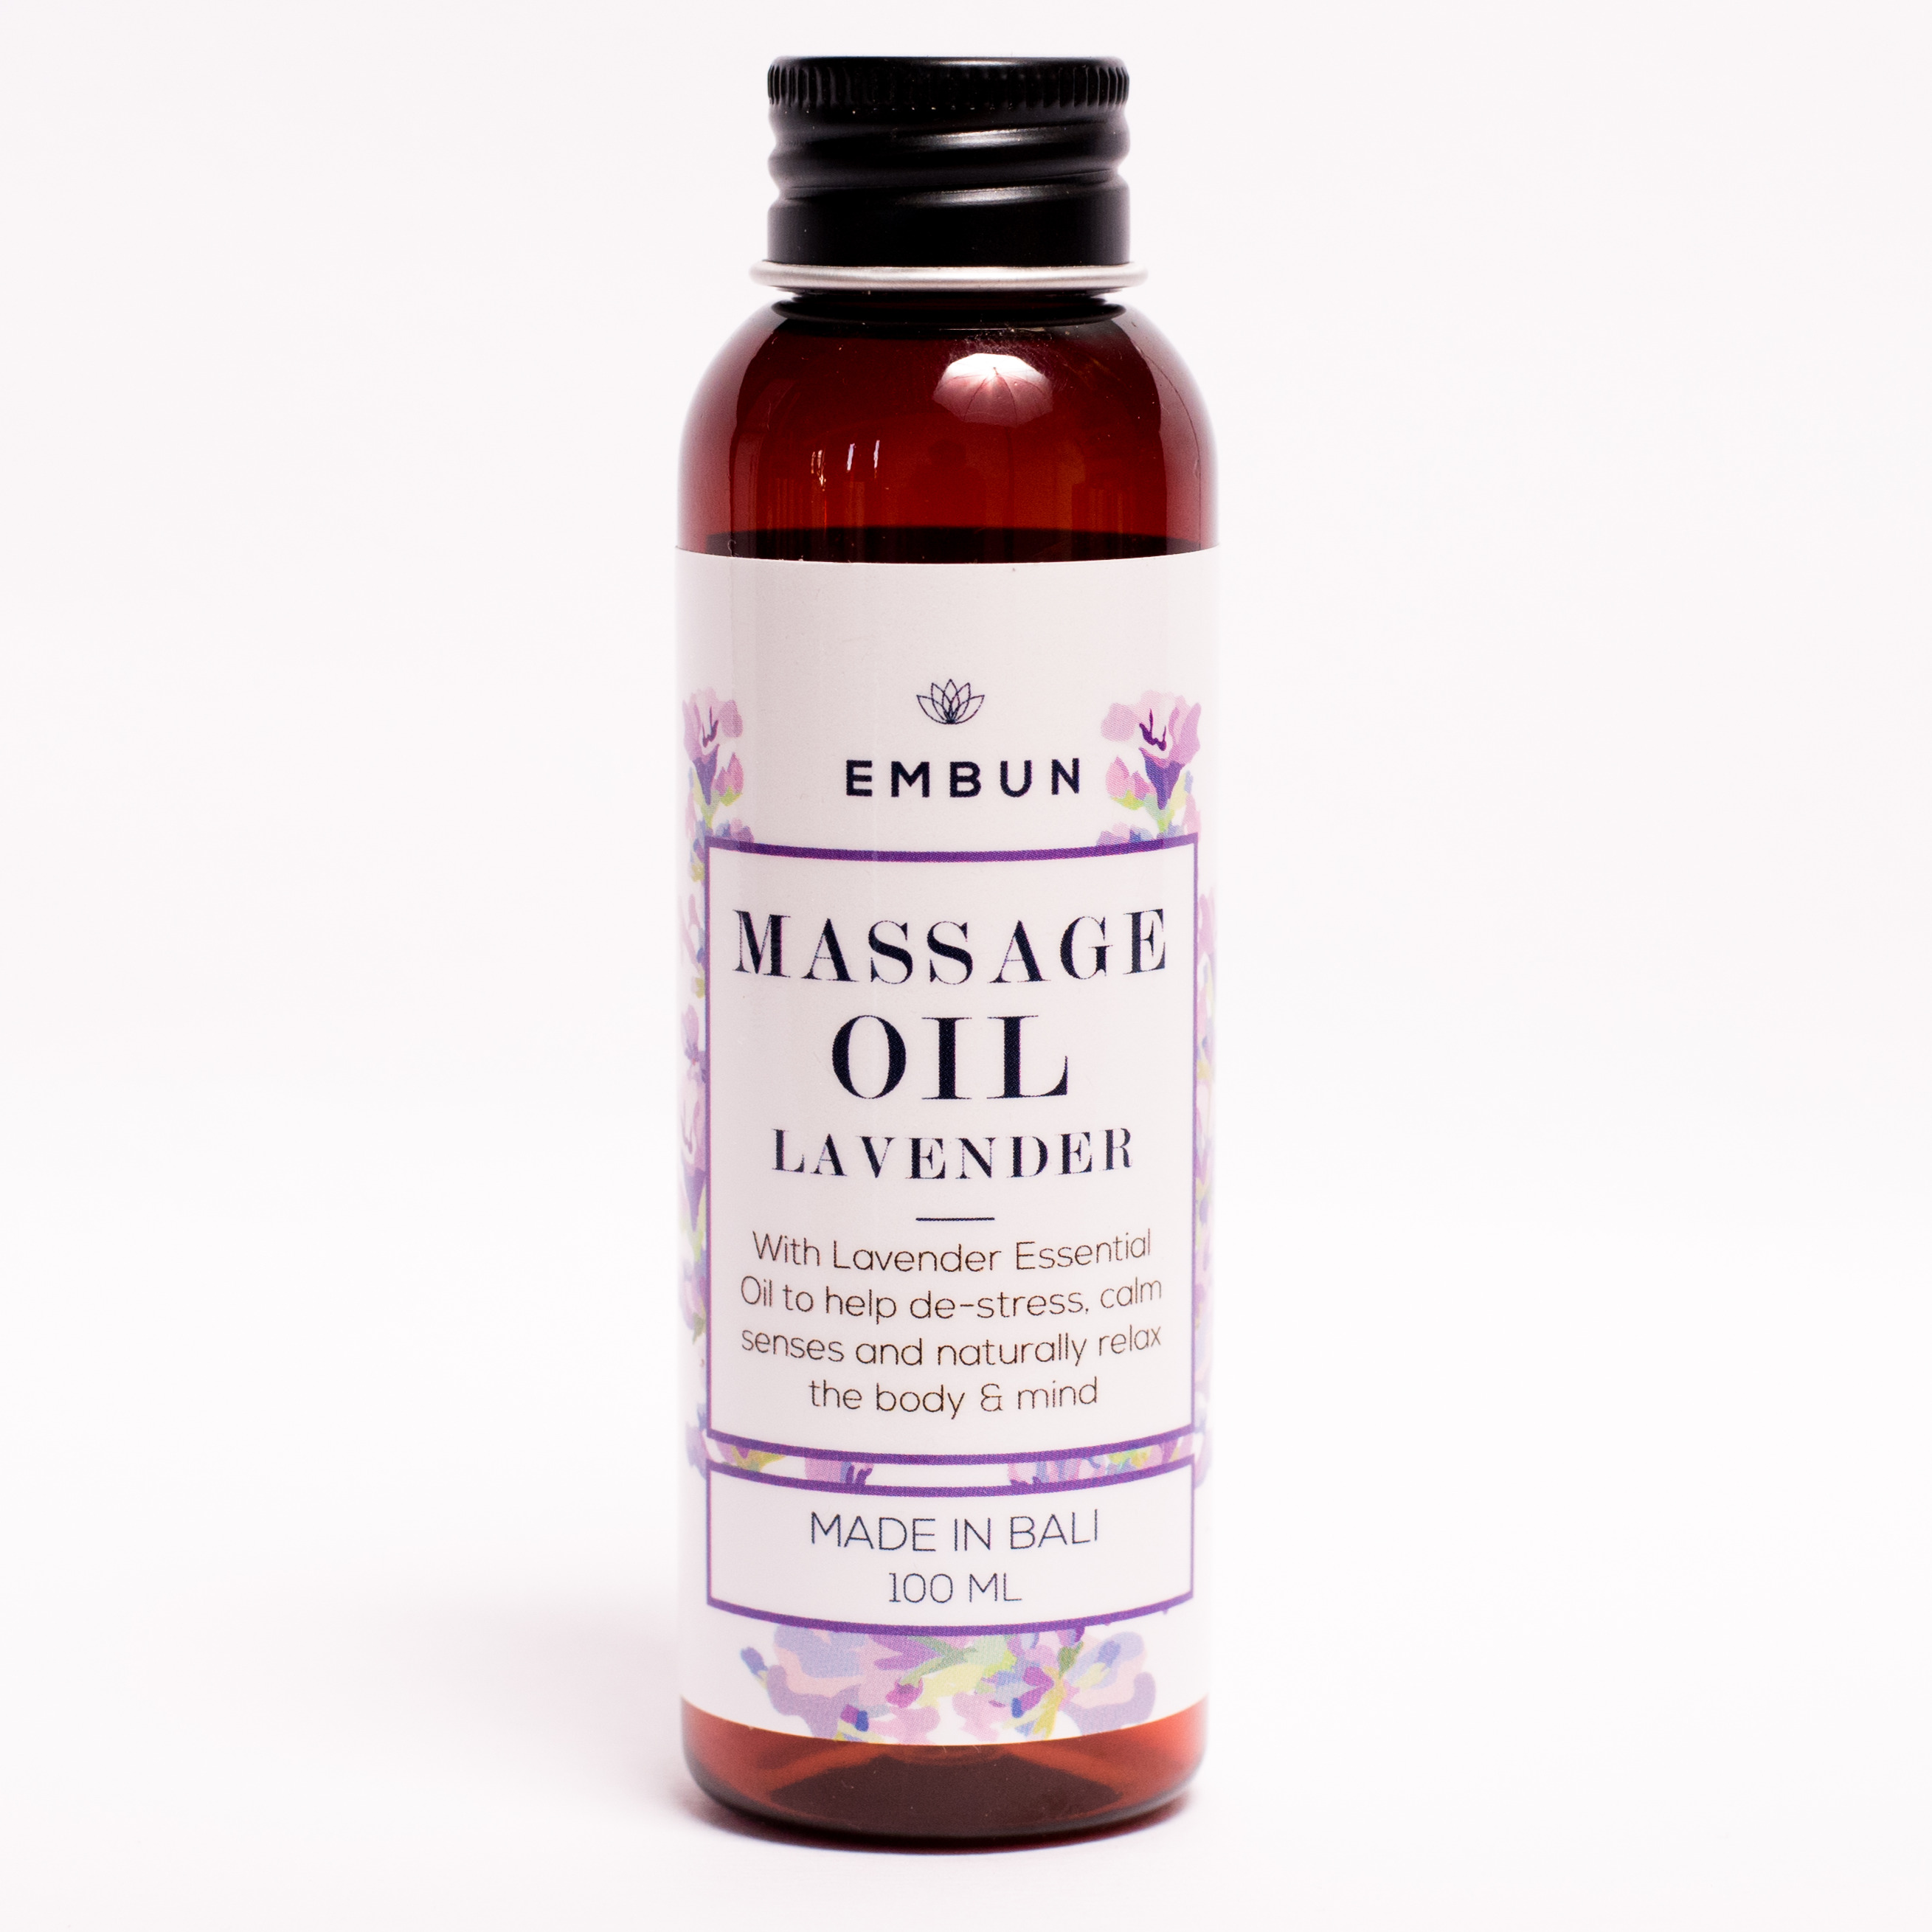 Embun Massage Oil Calming Lavender